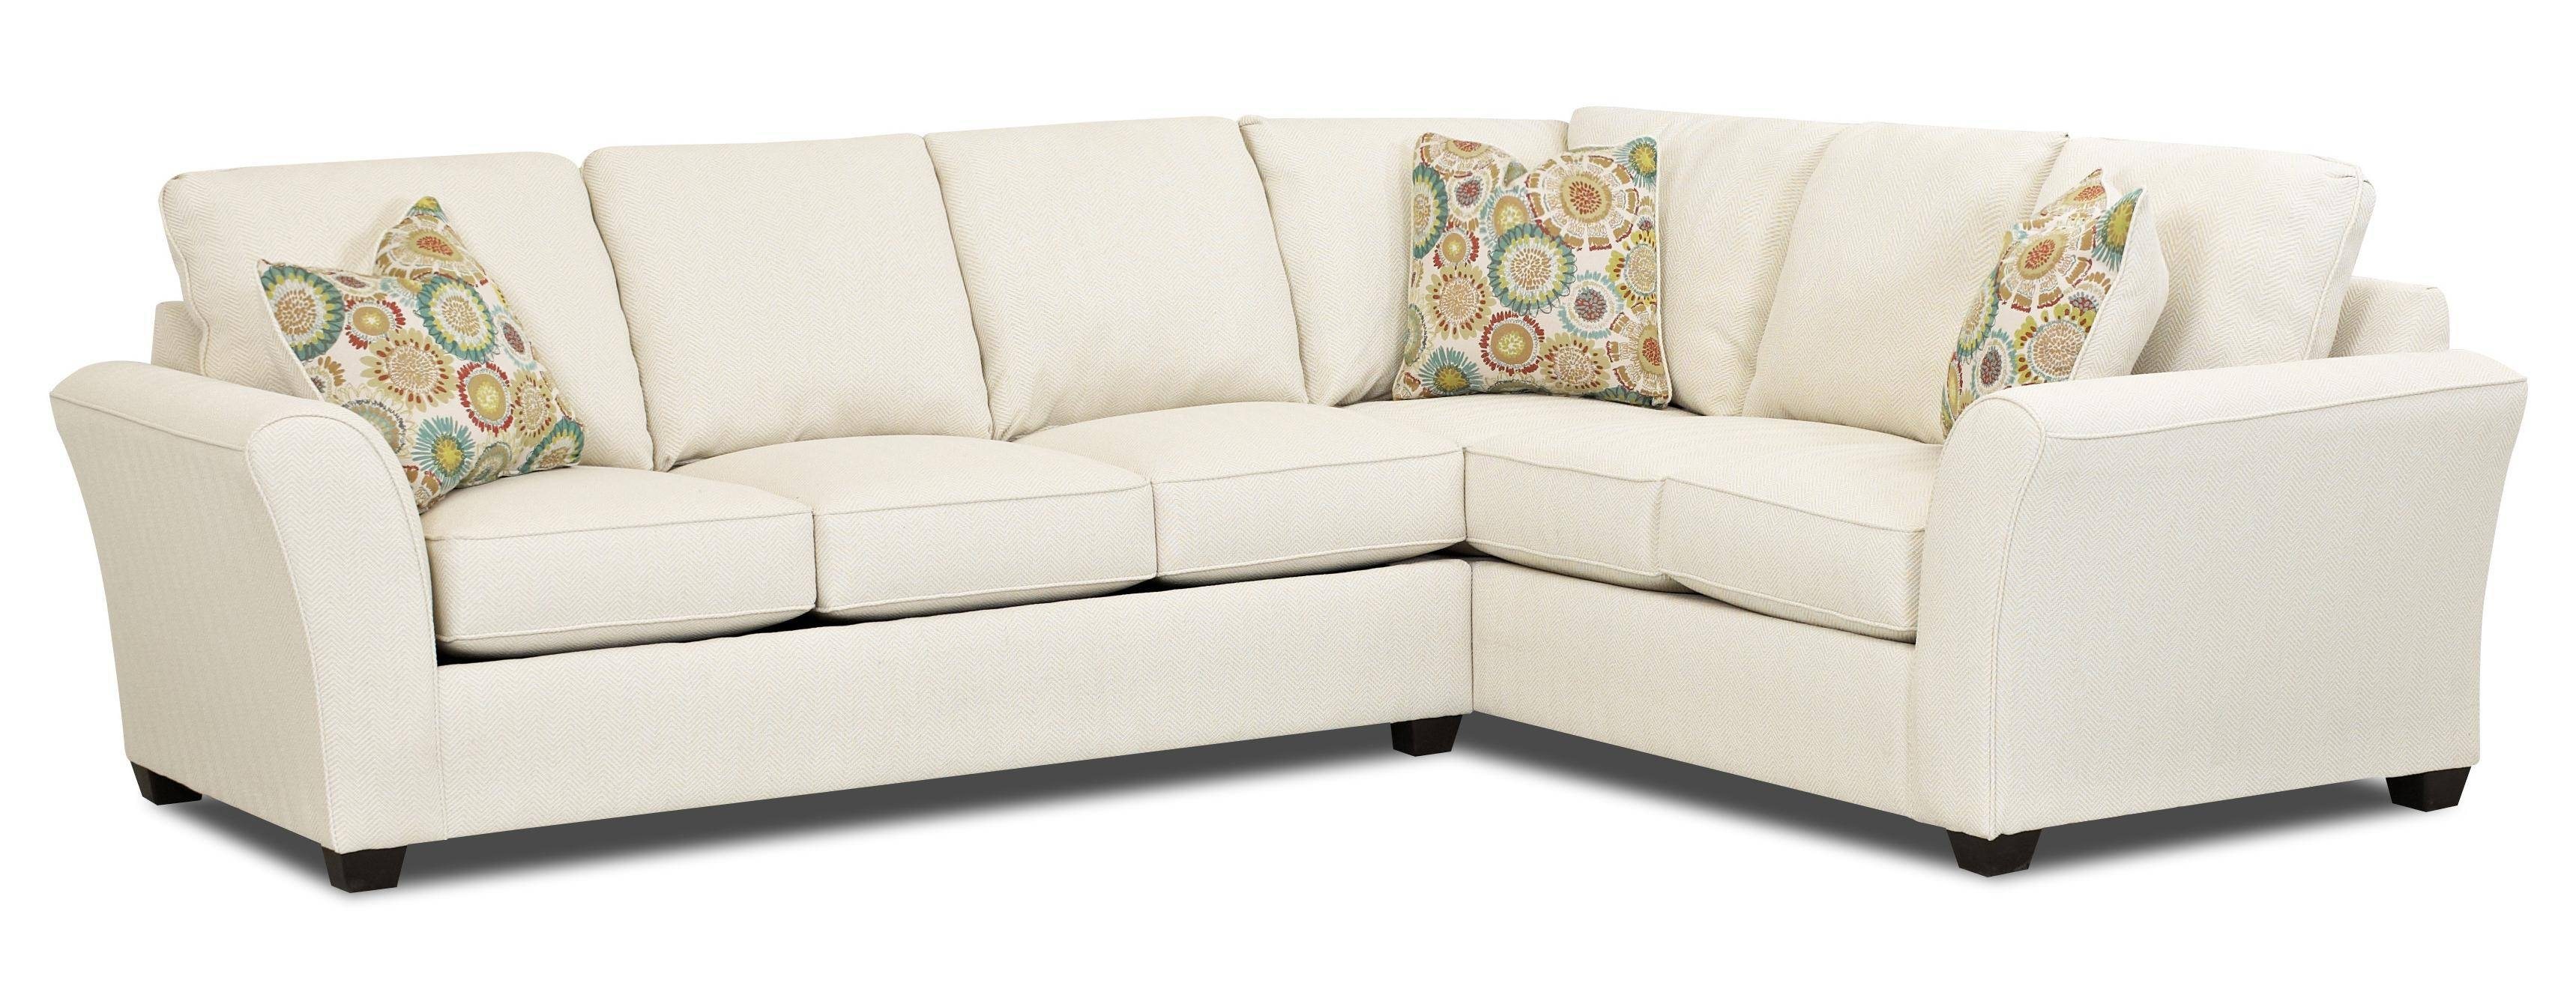 Furniture: Wondrous Alluring Sectional With Sleeper For Home With Sectional Sleeper Sofas With Chaise (View 9 of 30)